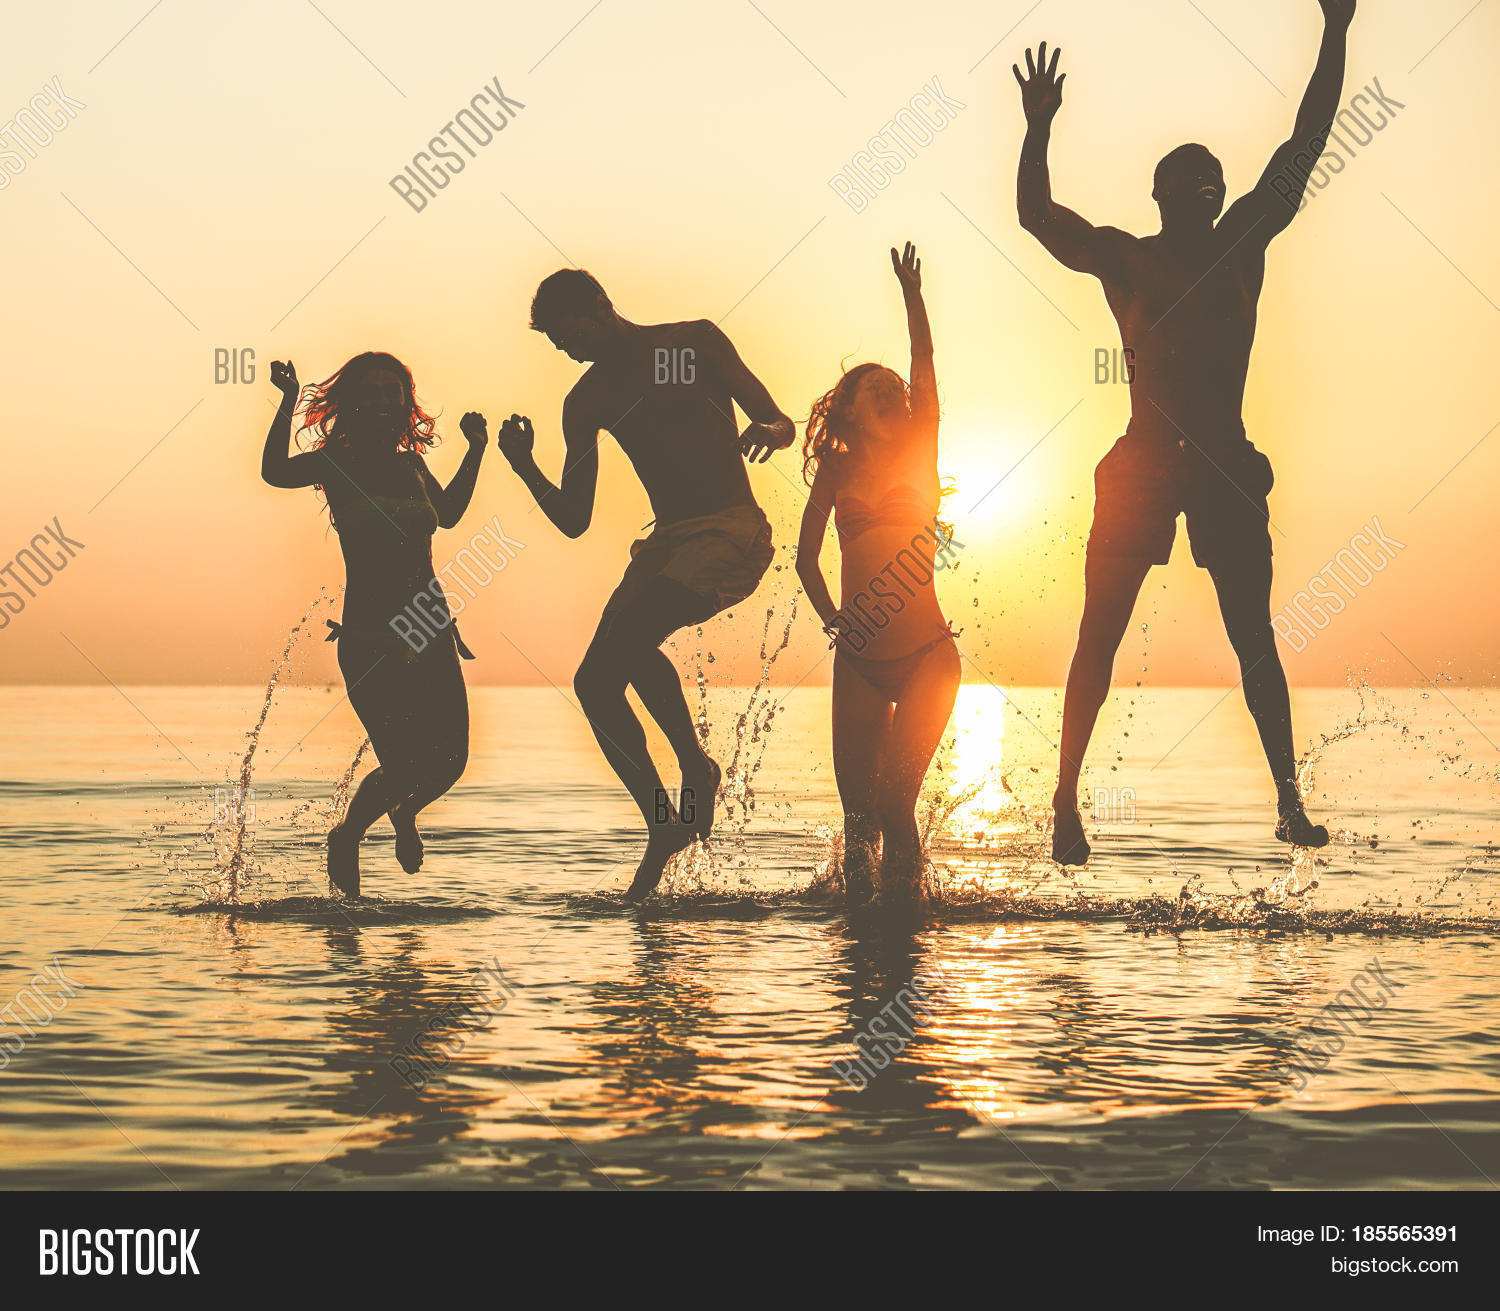 Silhouettes Of Happy Friends Jumping Inside Water On The Beach At Sunset